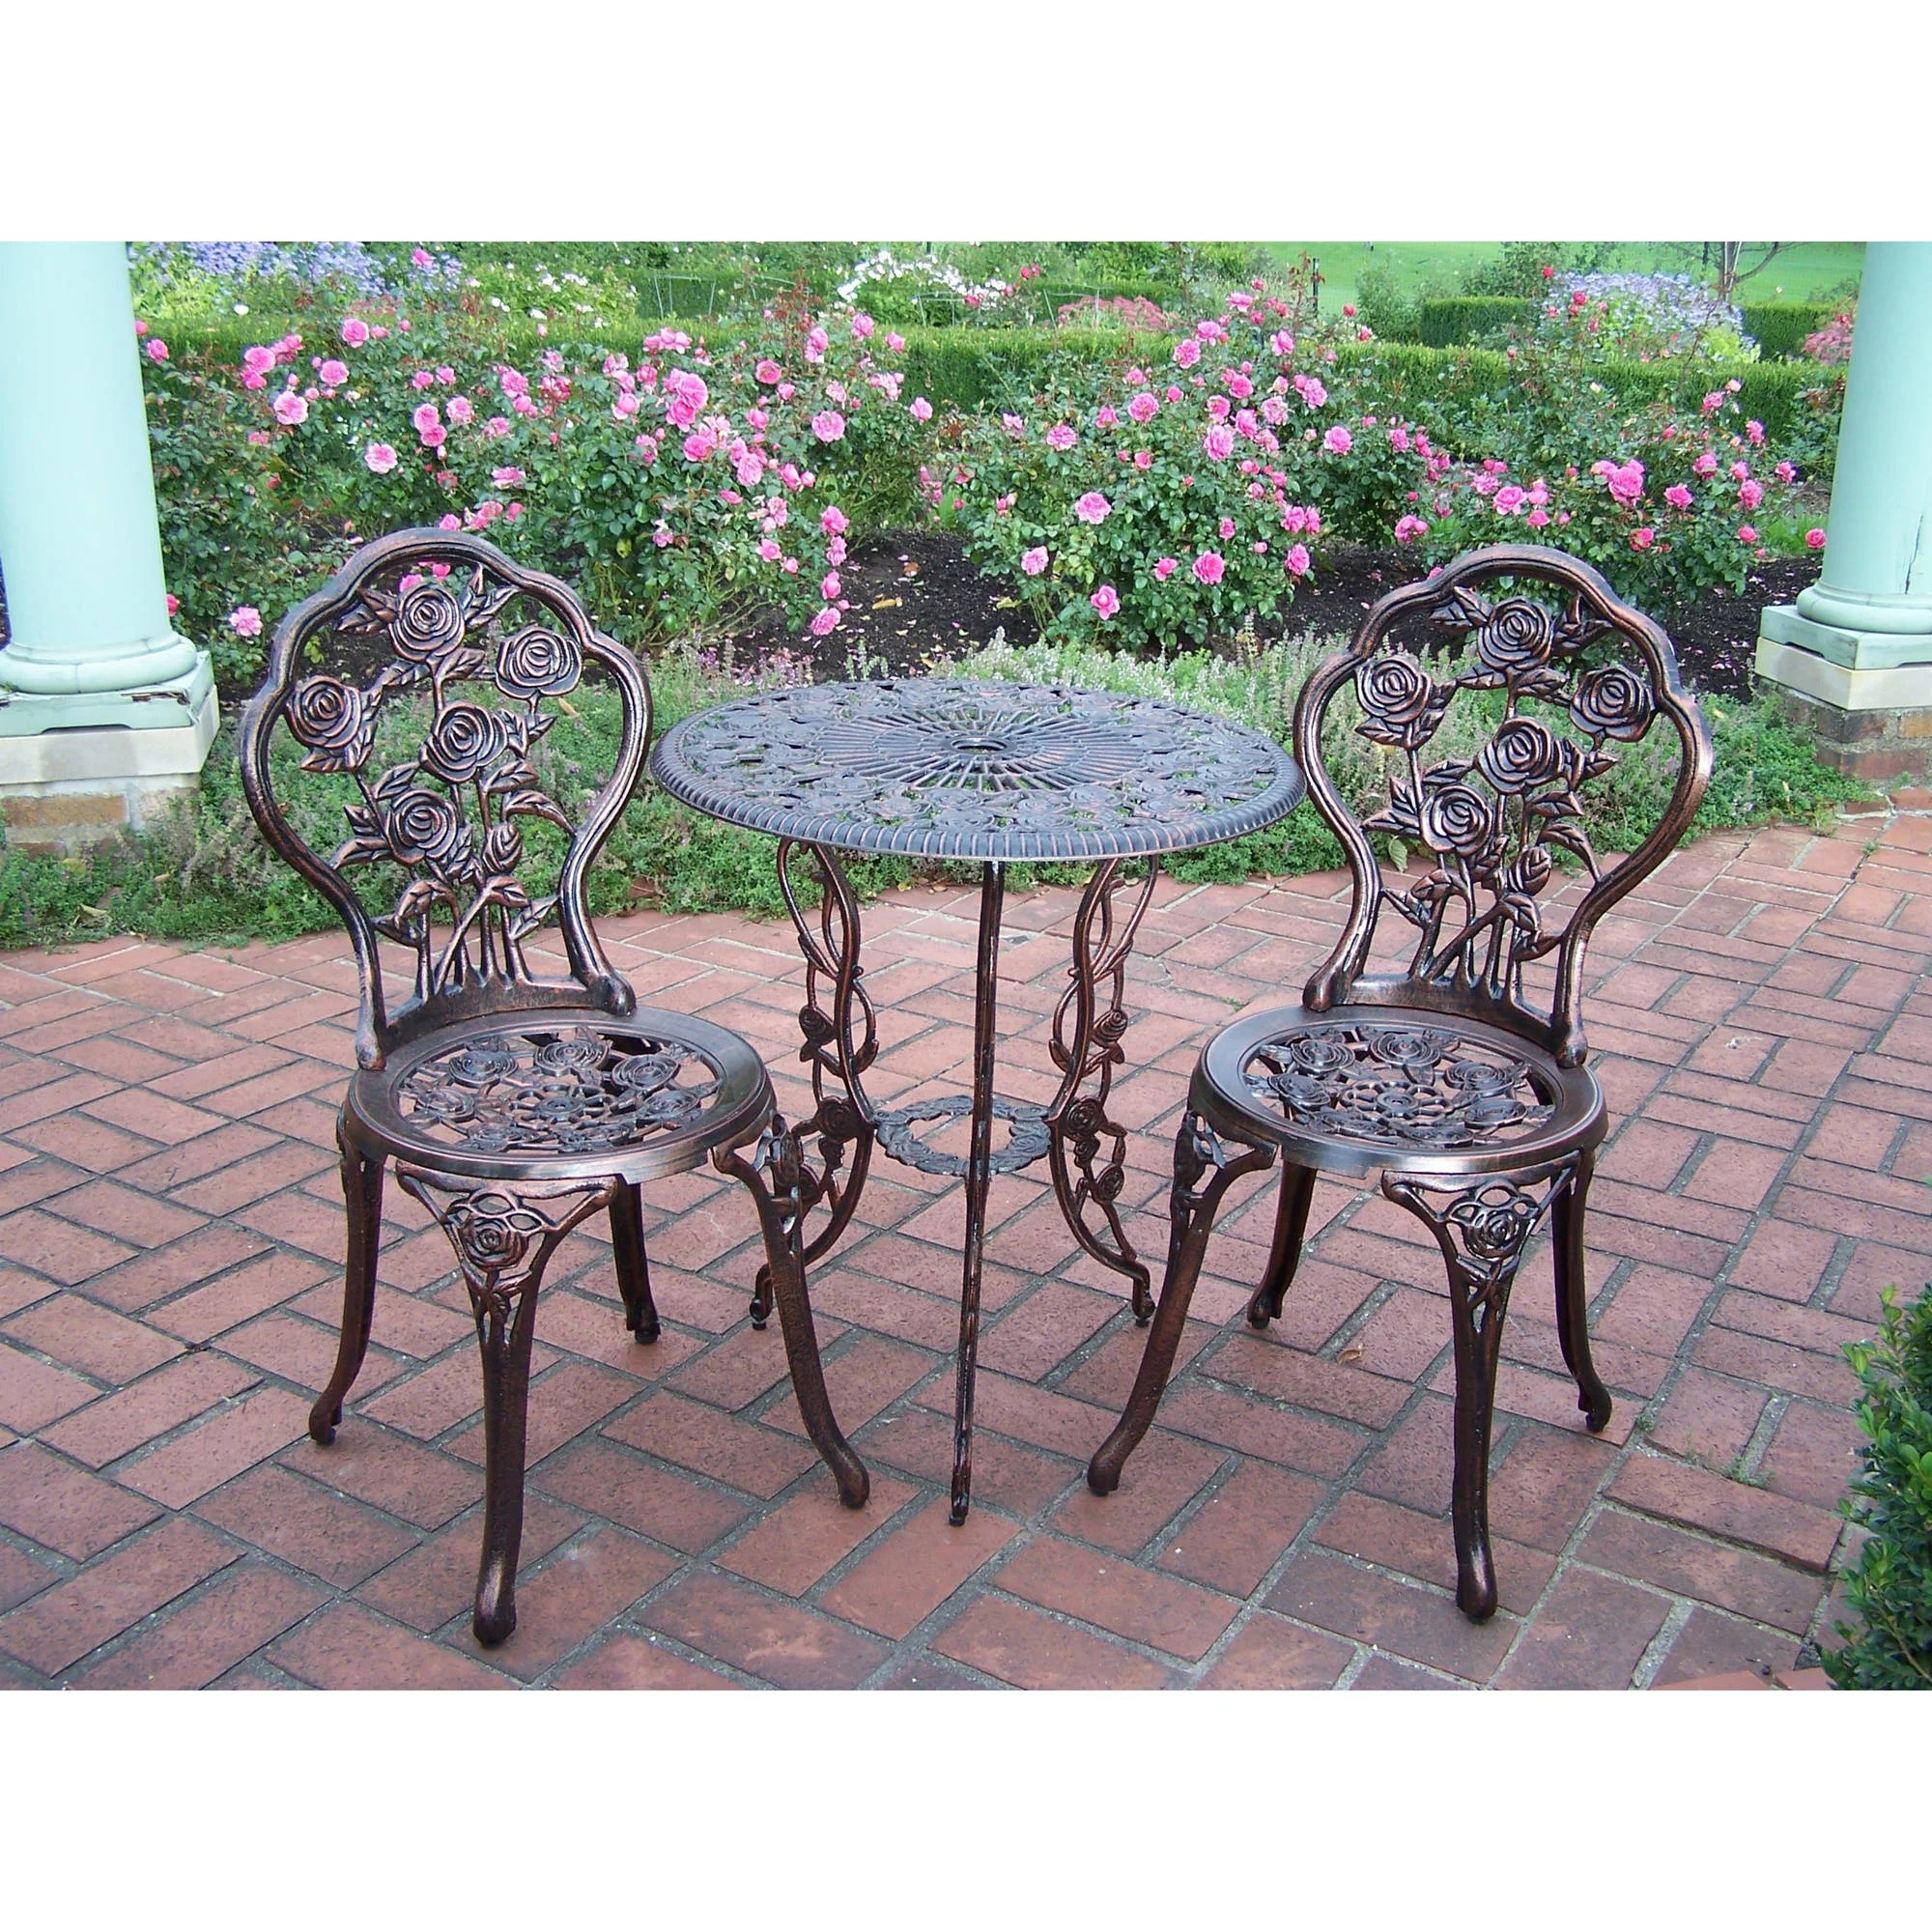 Patio Furniture Set 3 Piece Bistro Wrought Small Iron